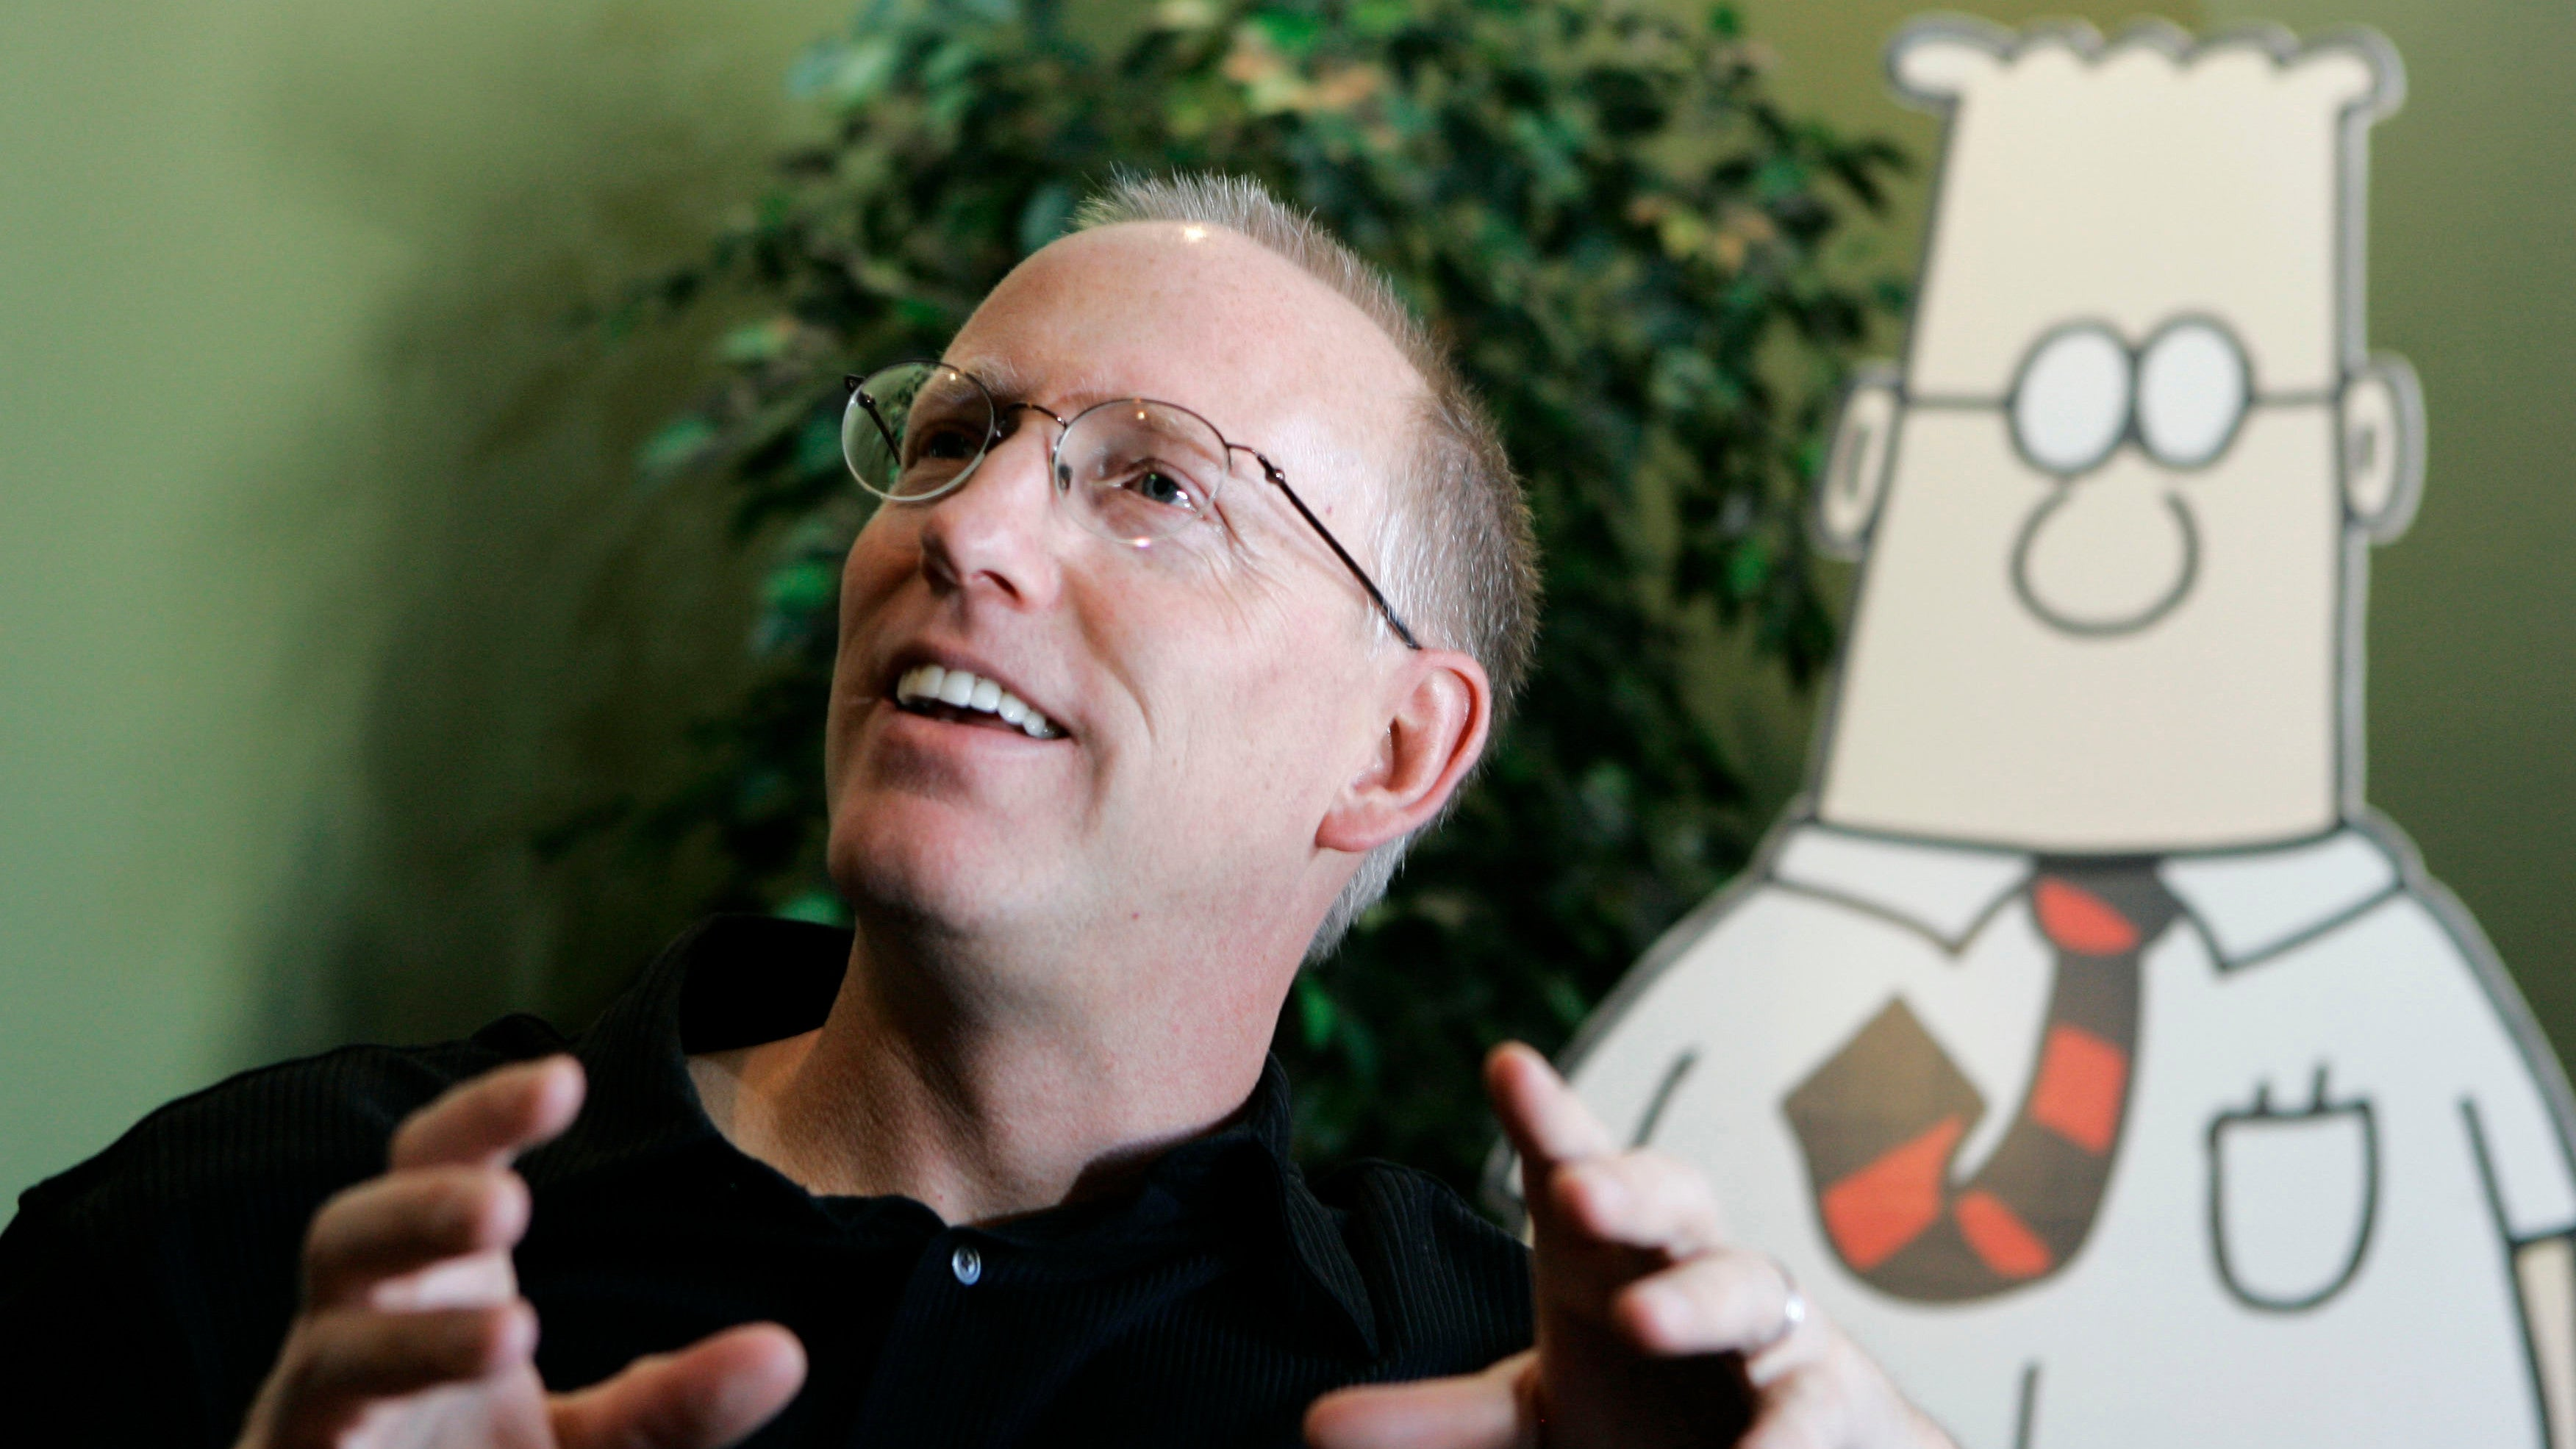 Dilbert Creator Scott Adams Uses Mass Shooting To Promote His App